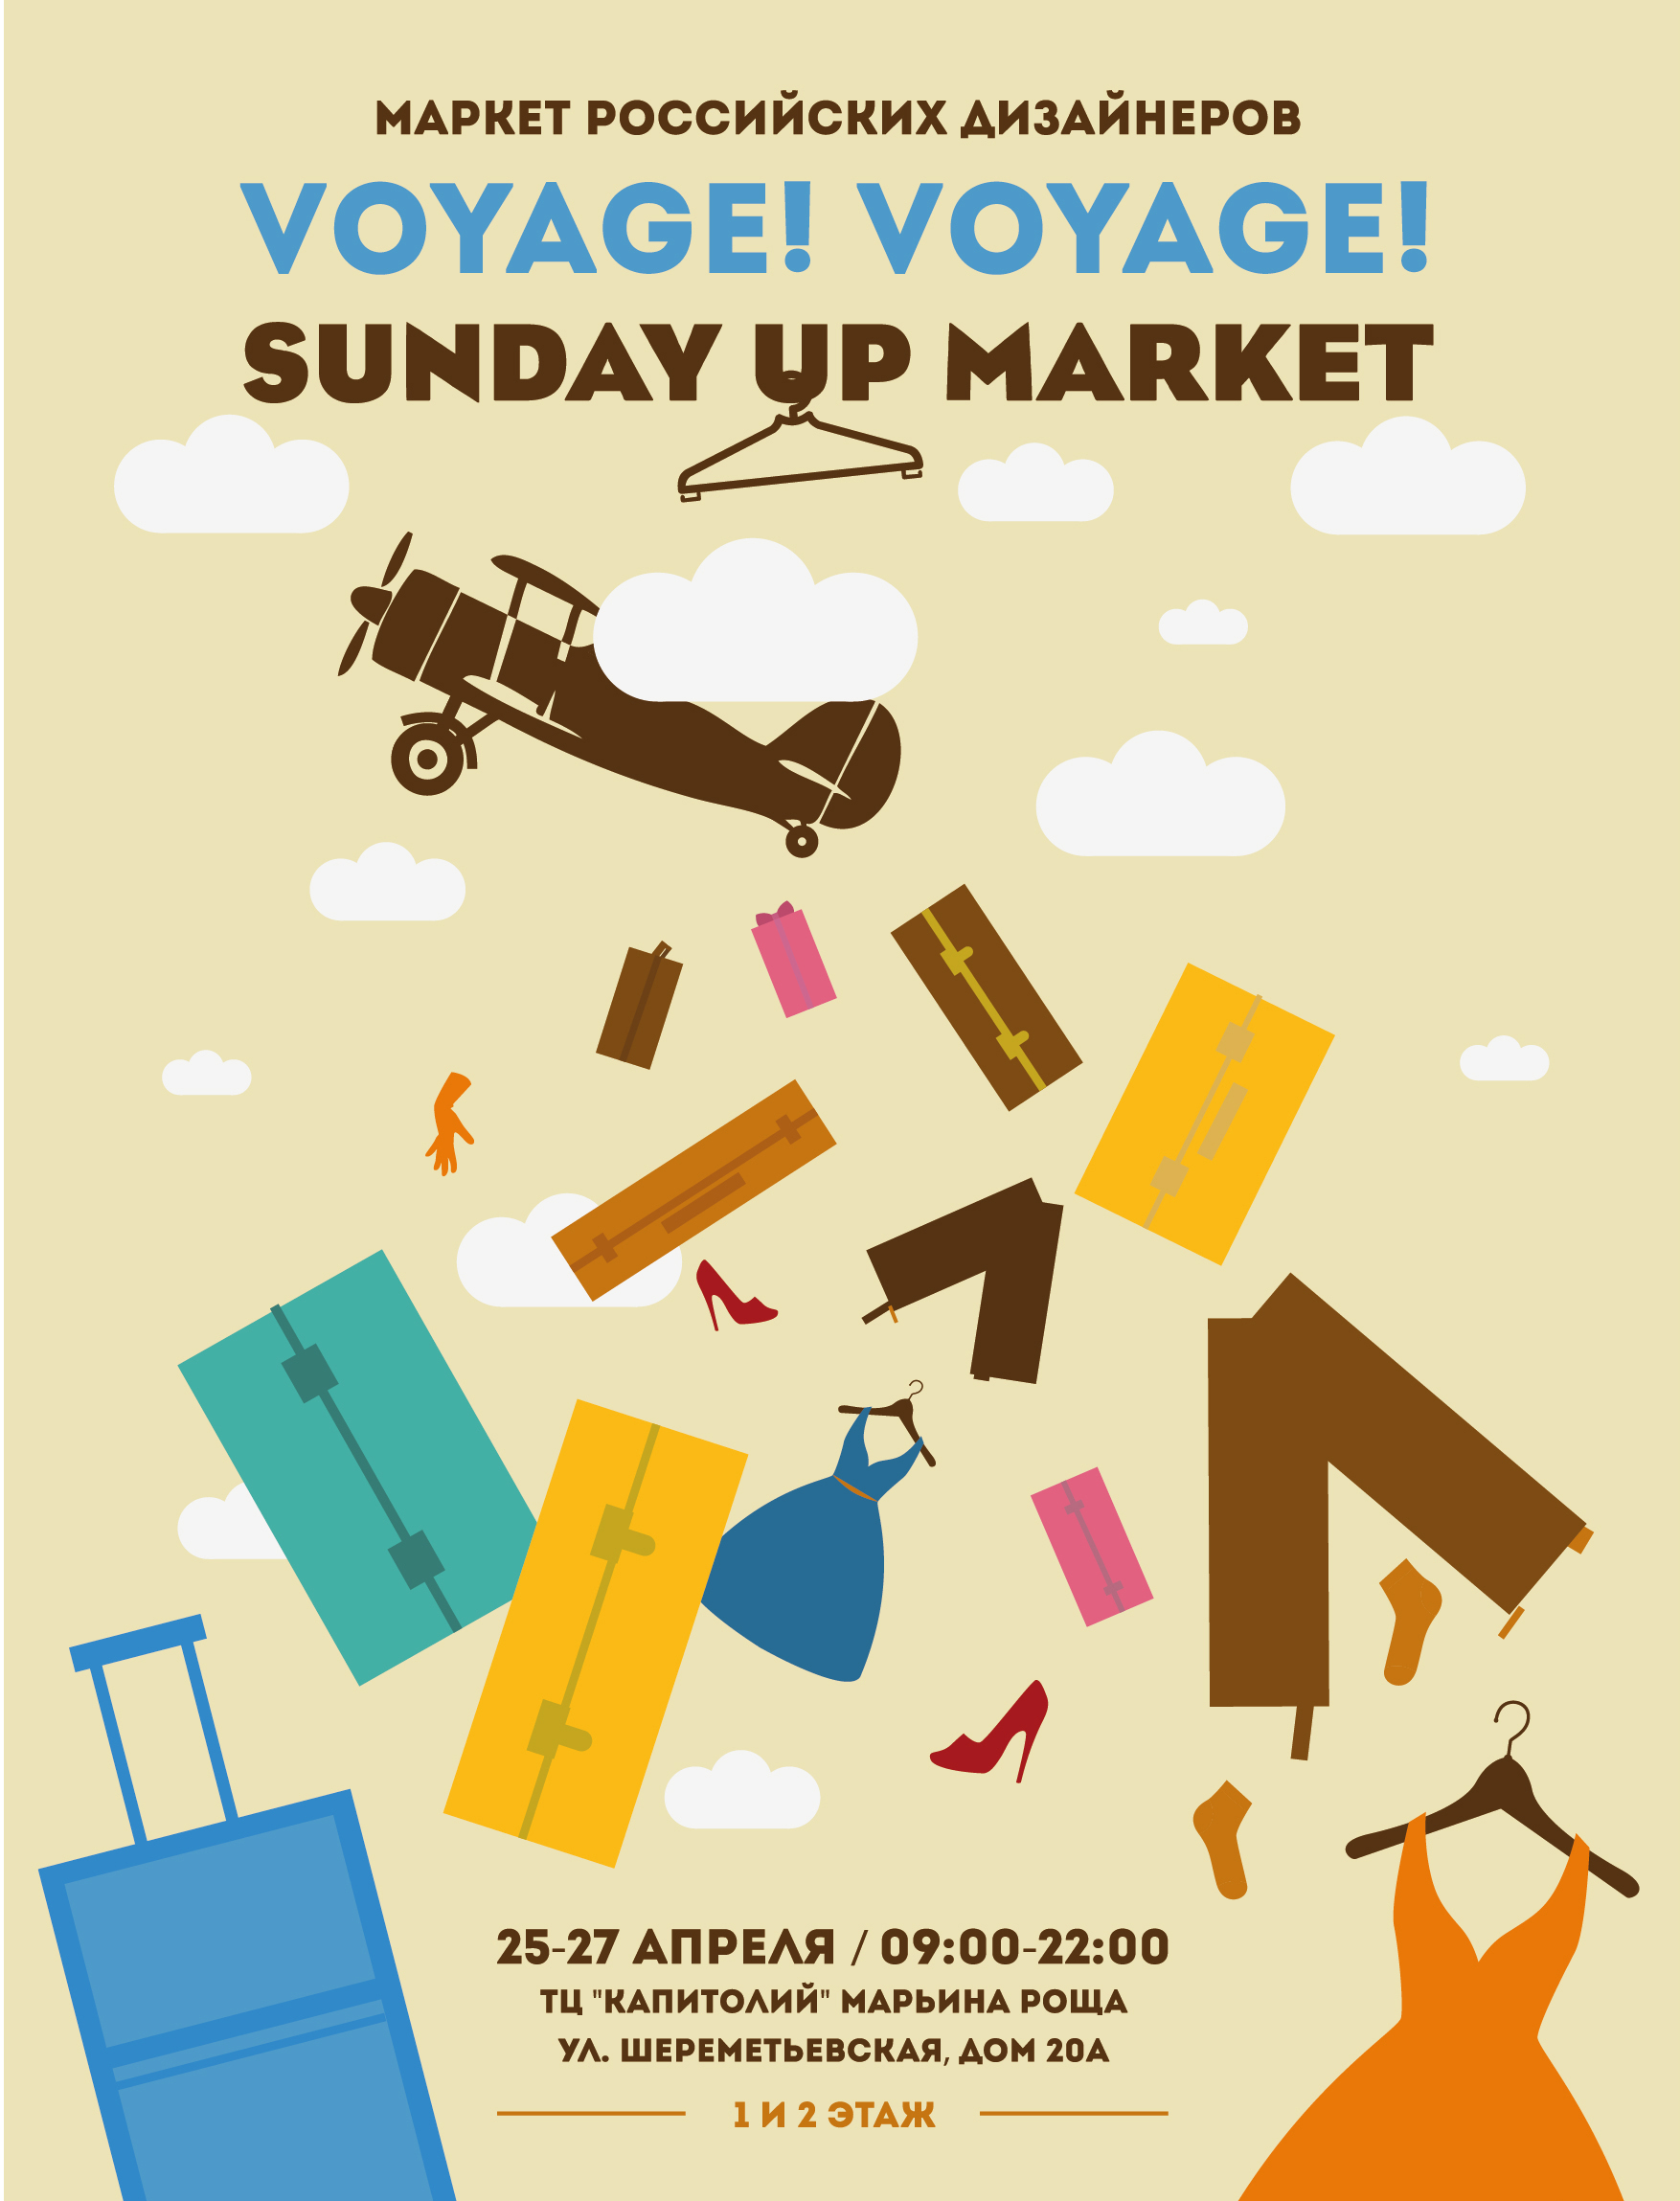 Фестиваль Sunday Up Market Voyage! Voyage!